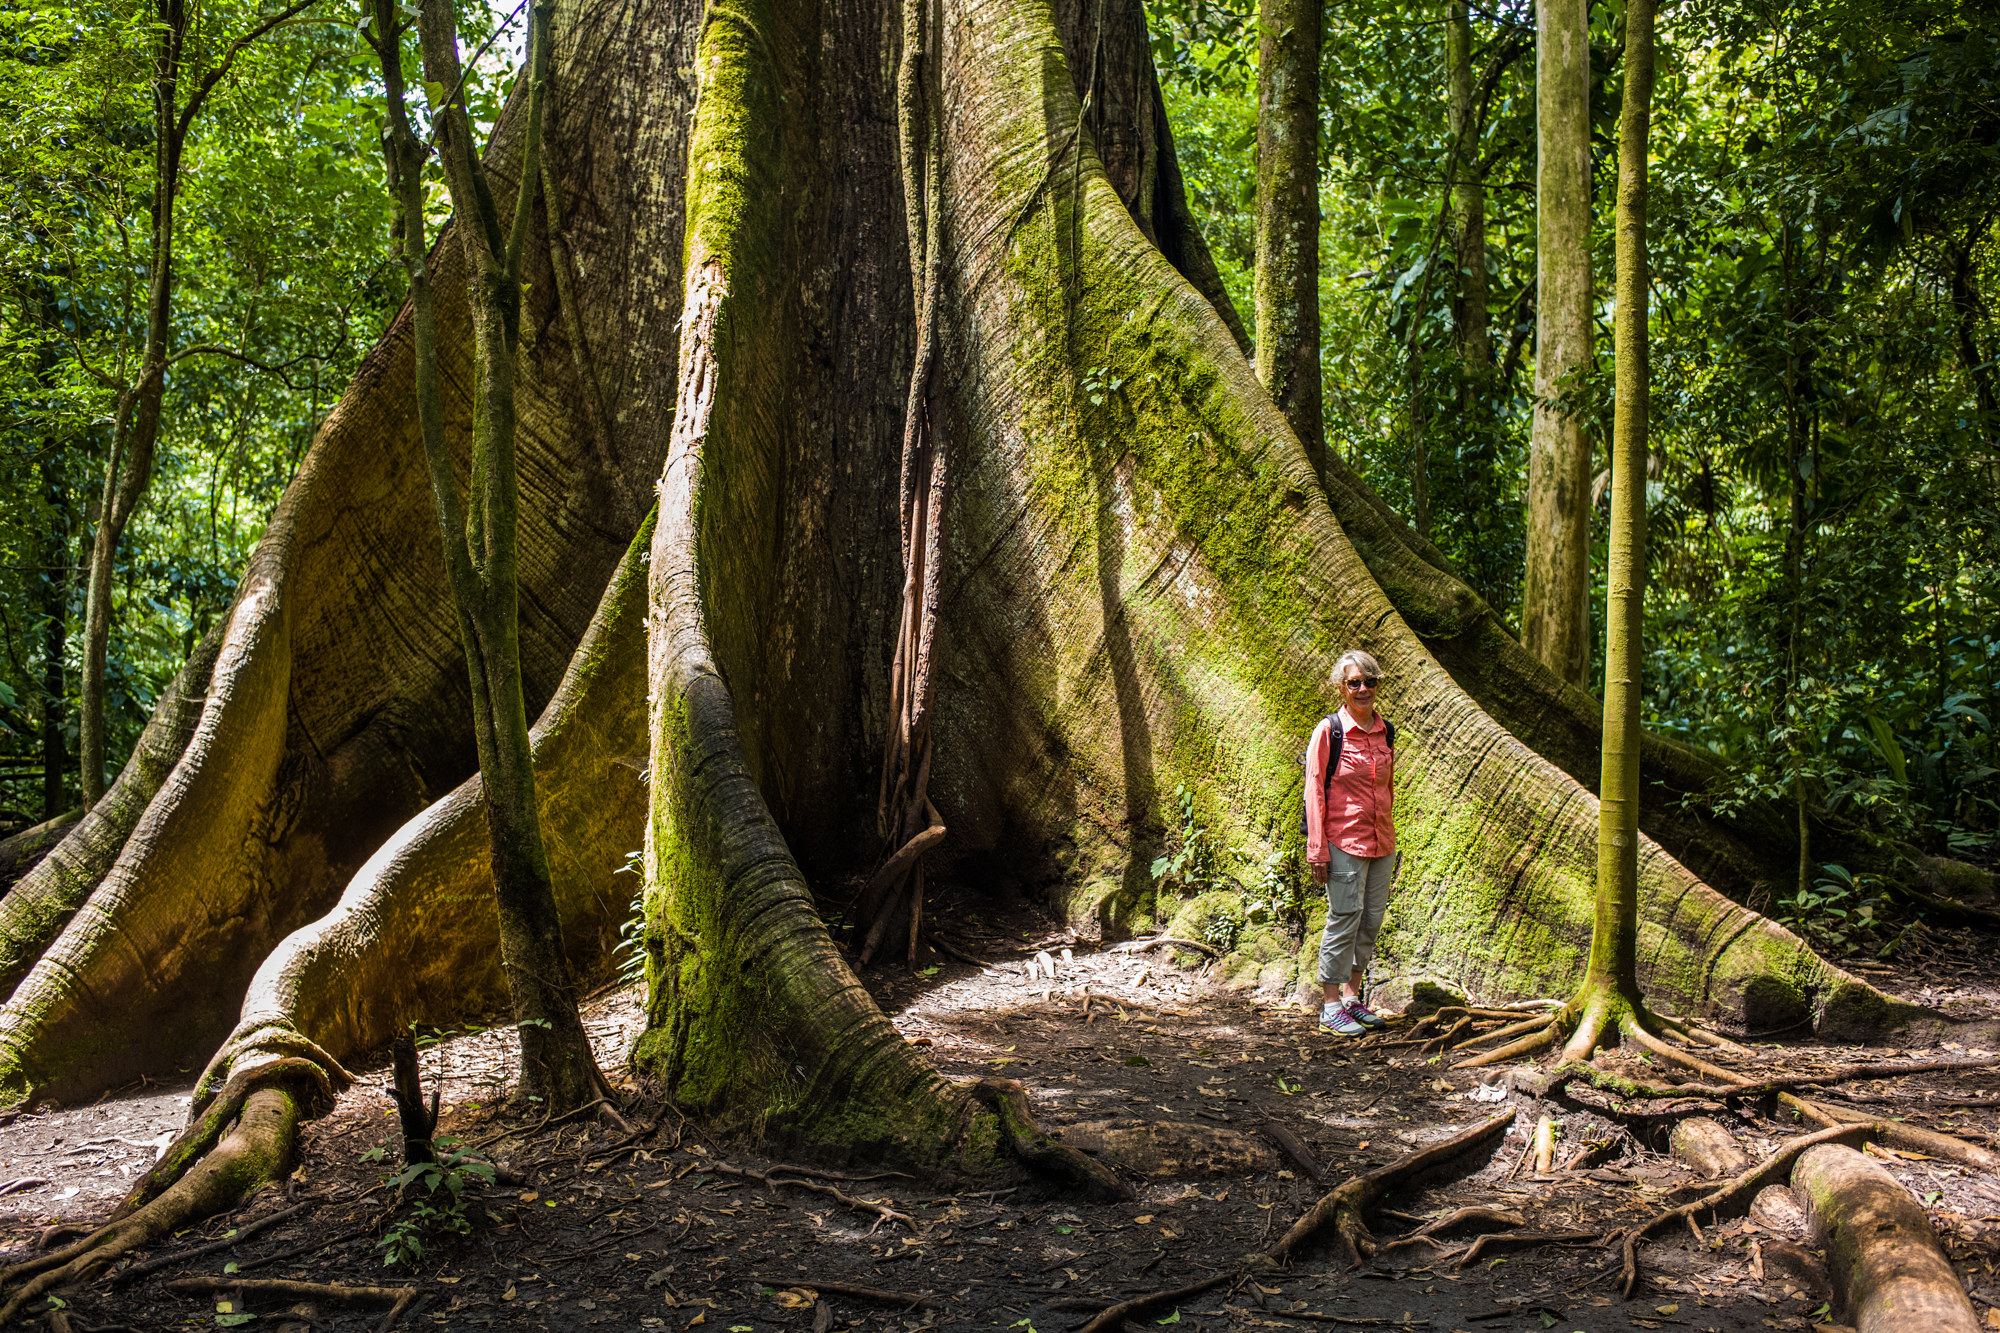 The root system of a Celiba tree in the Arenal Volcanic Park